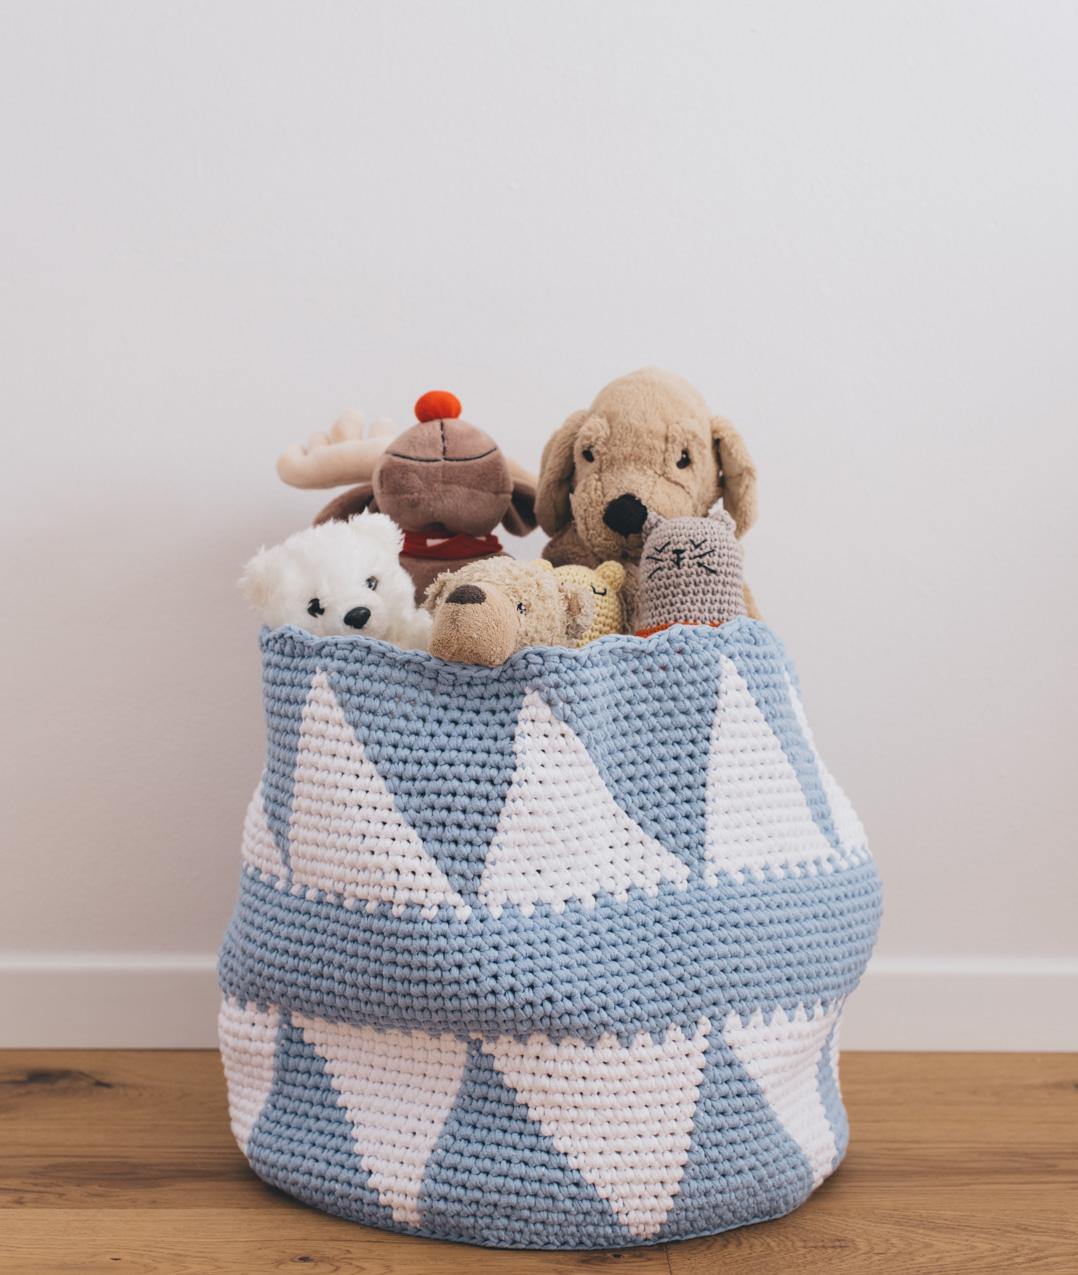 Home Decor Baby Collection - HomewareHome Decor Baby Collection - Homeware - HAPPY TOYS BASKET - 1